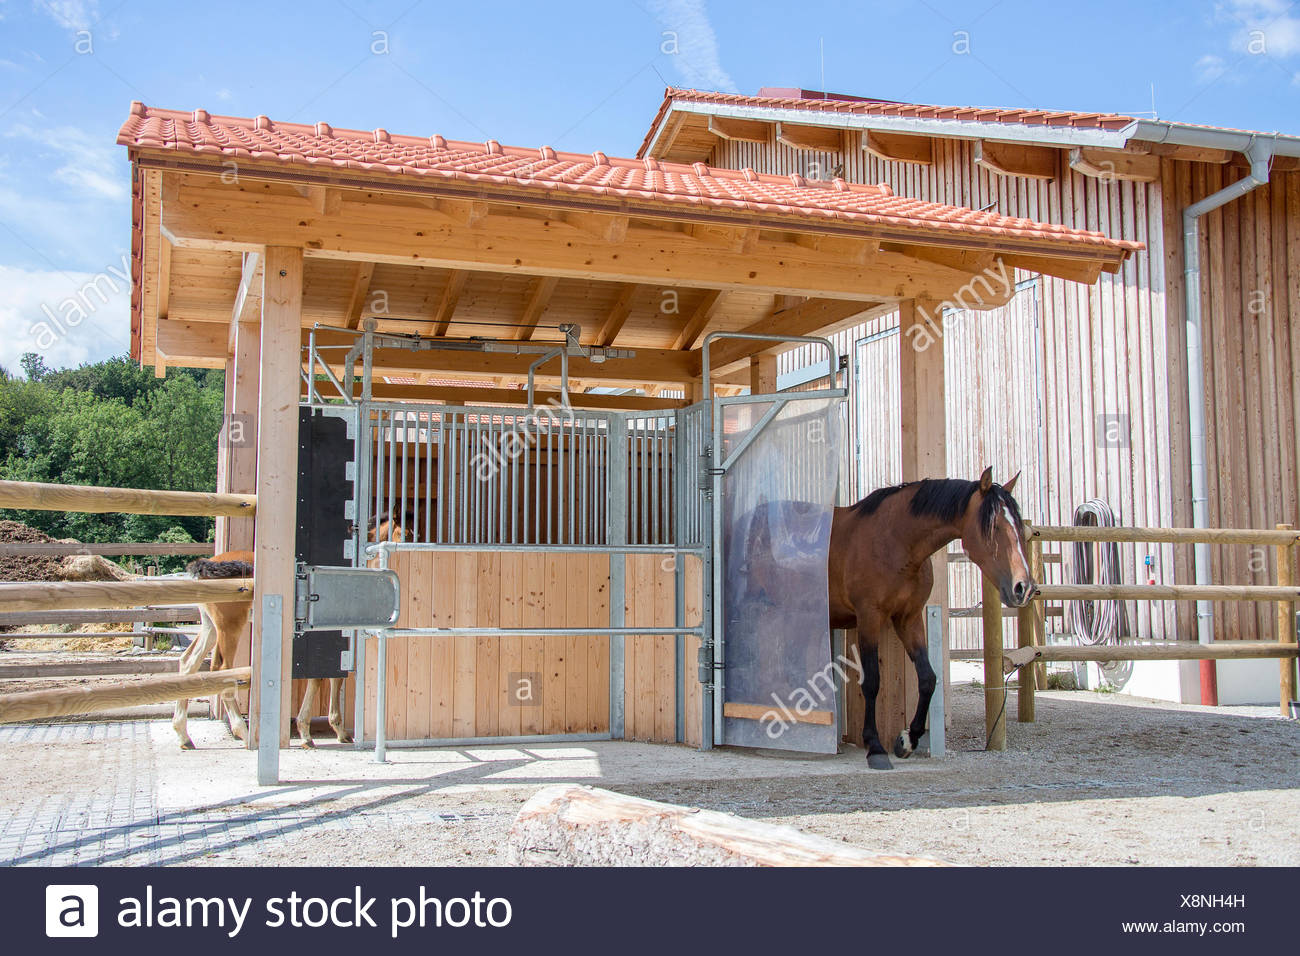 Concentrate feeder for horses - Stock Image